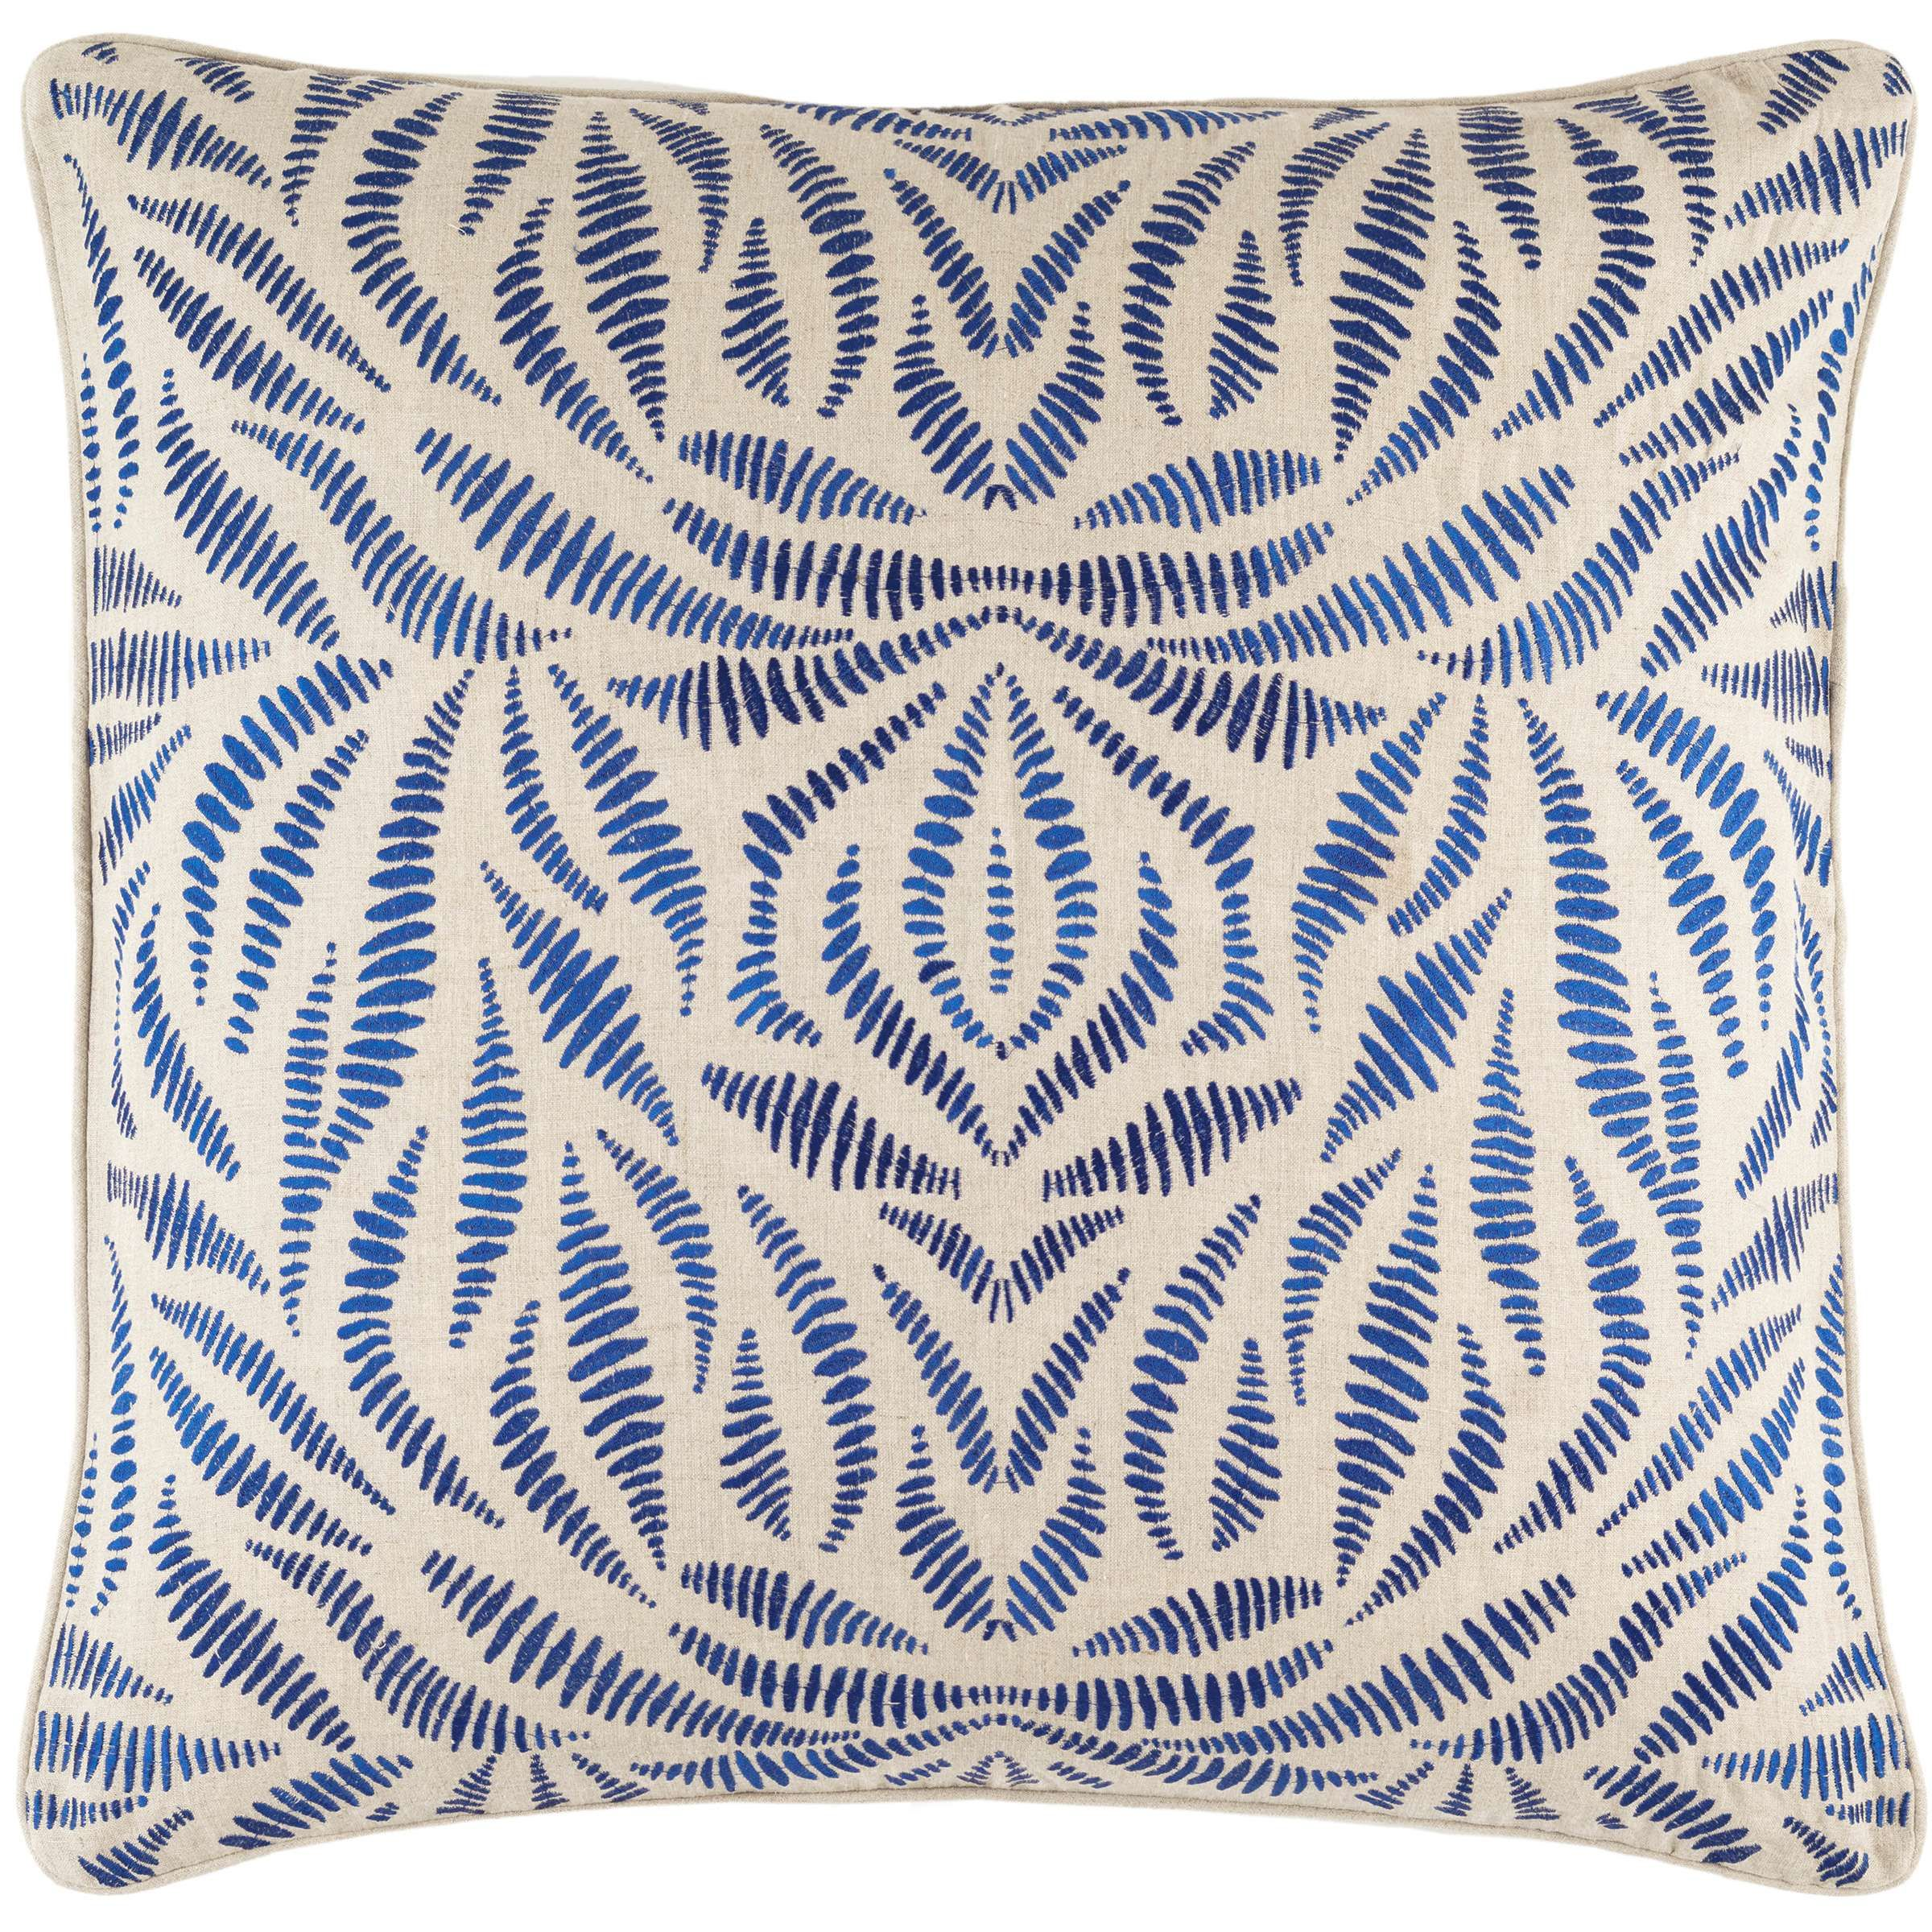 Fossil Embroidered Indigo Sham The Outlet Pillows Rustic Linen Pillow Sale